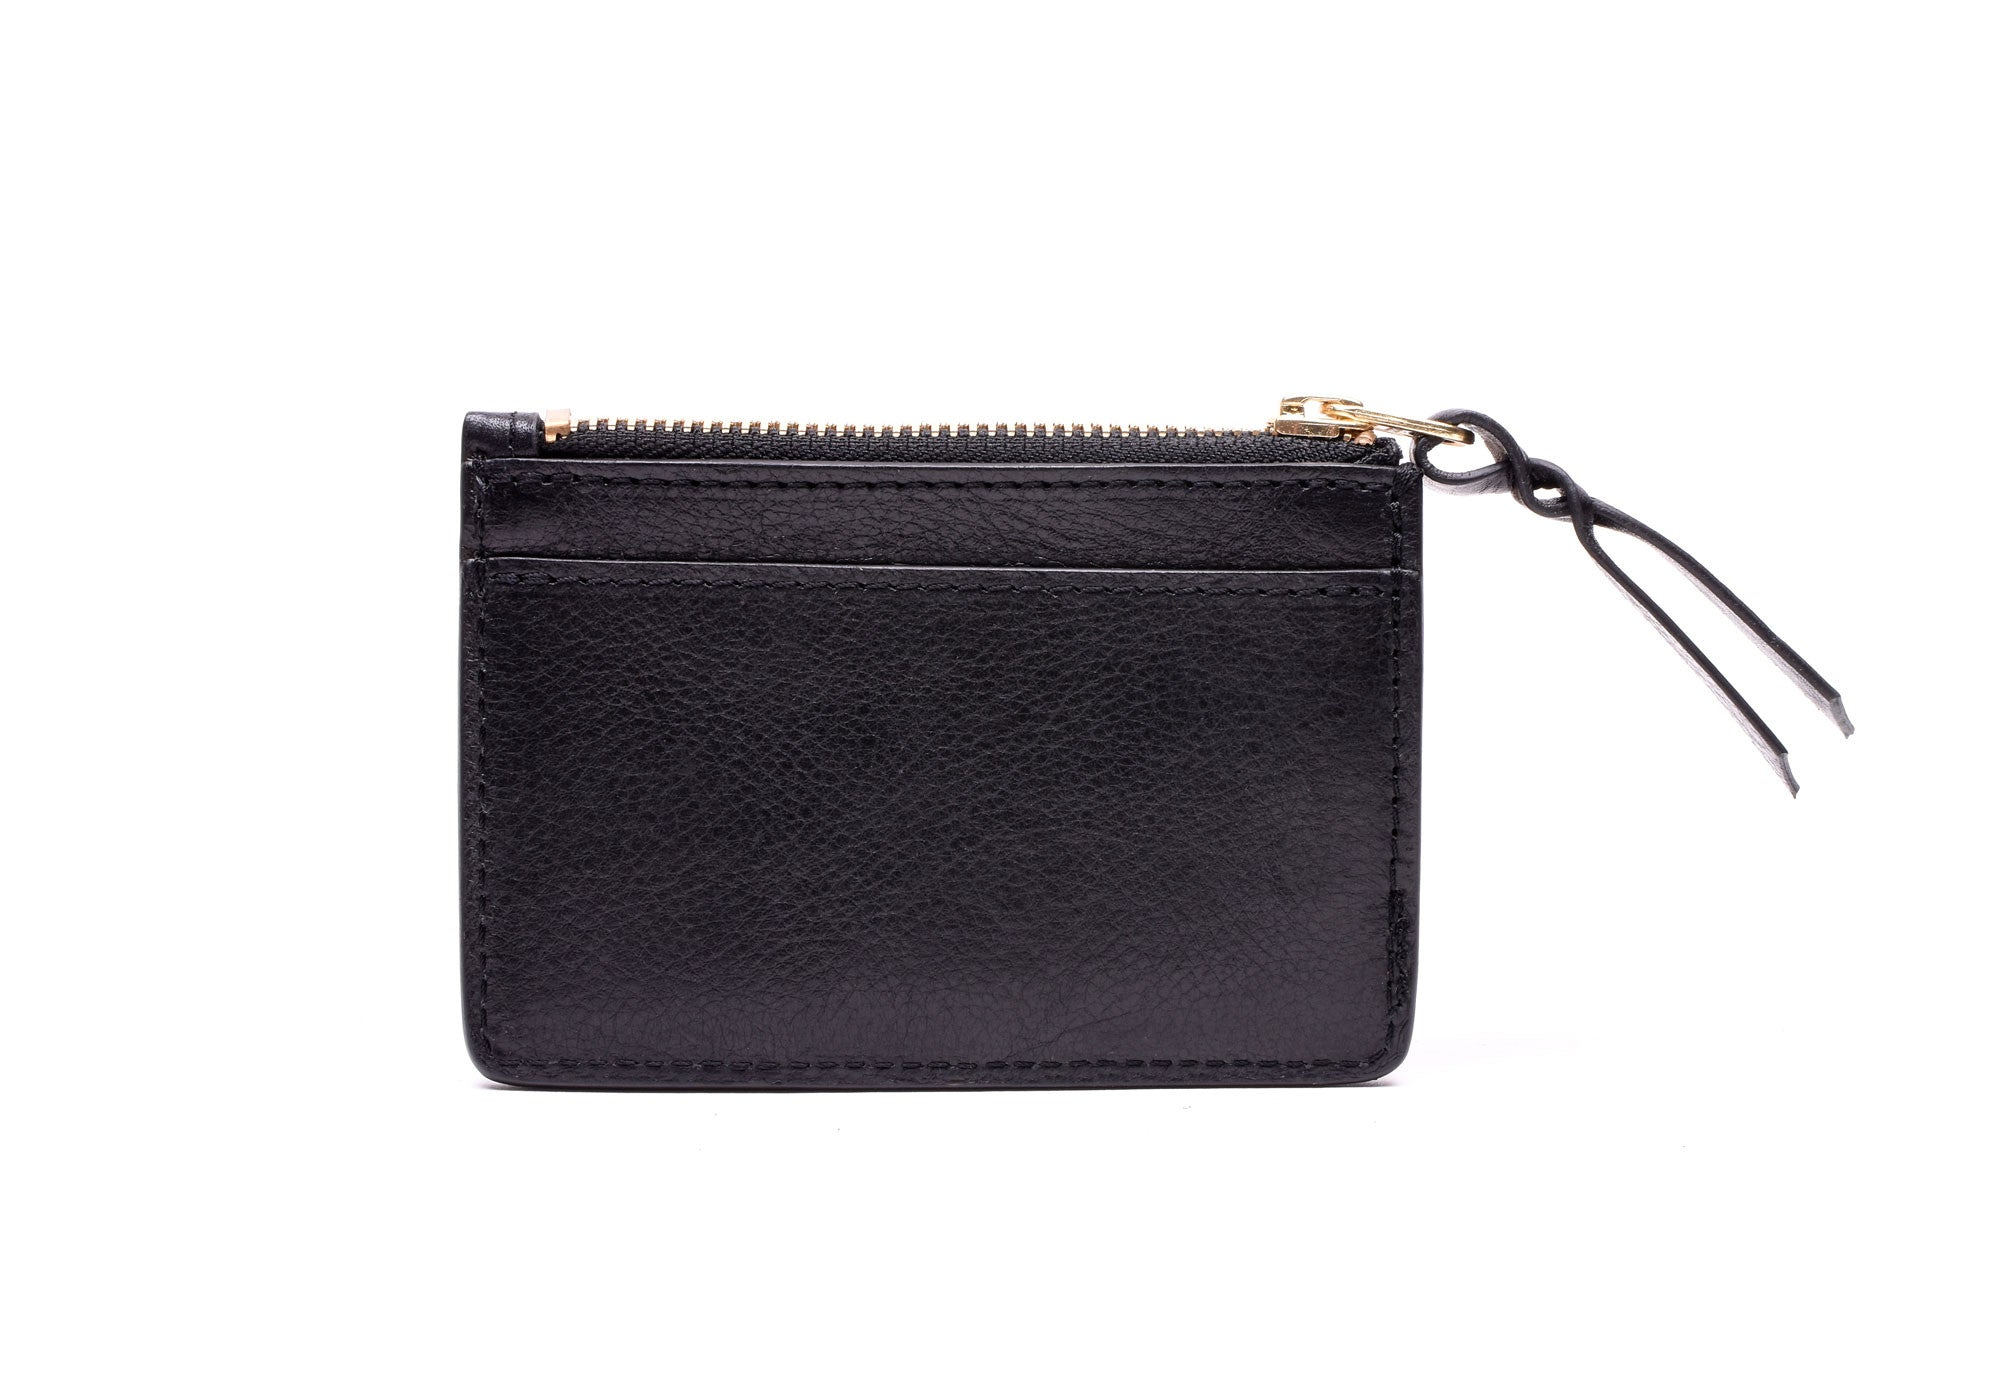 Front View Open of Zipper Credit Card Wallet Black